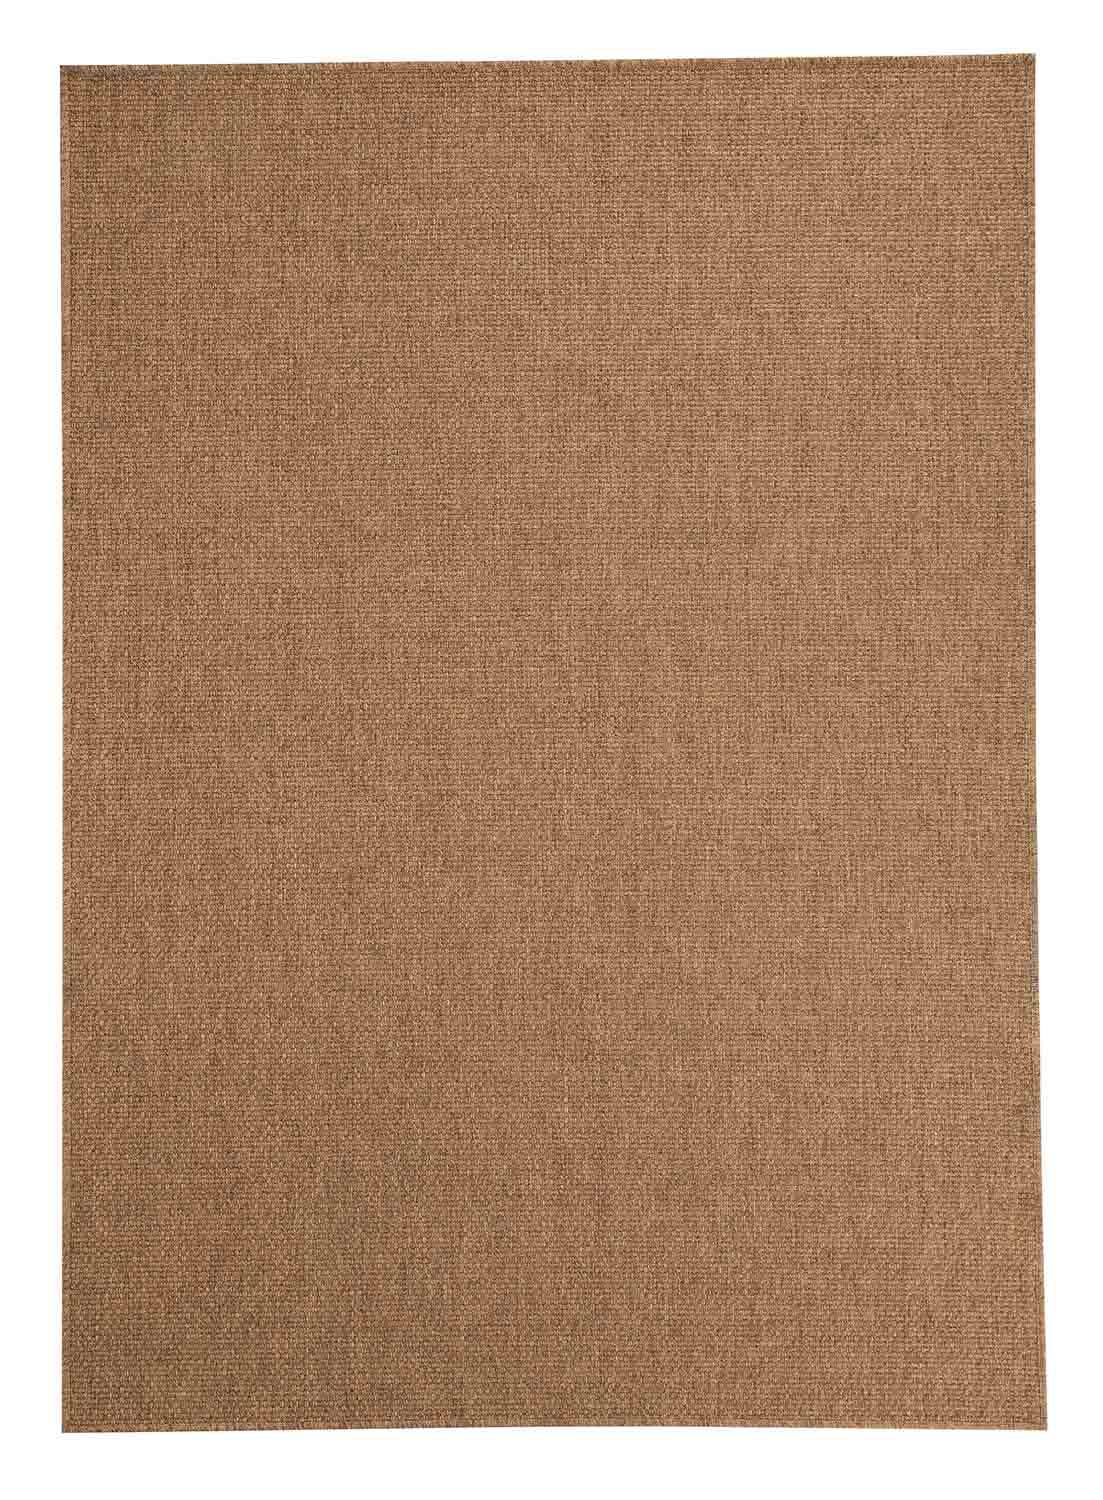 Ashley Luciano Medium Rug - Tan